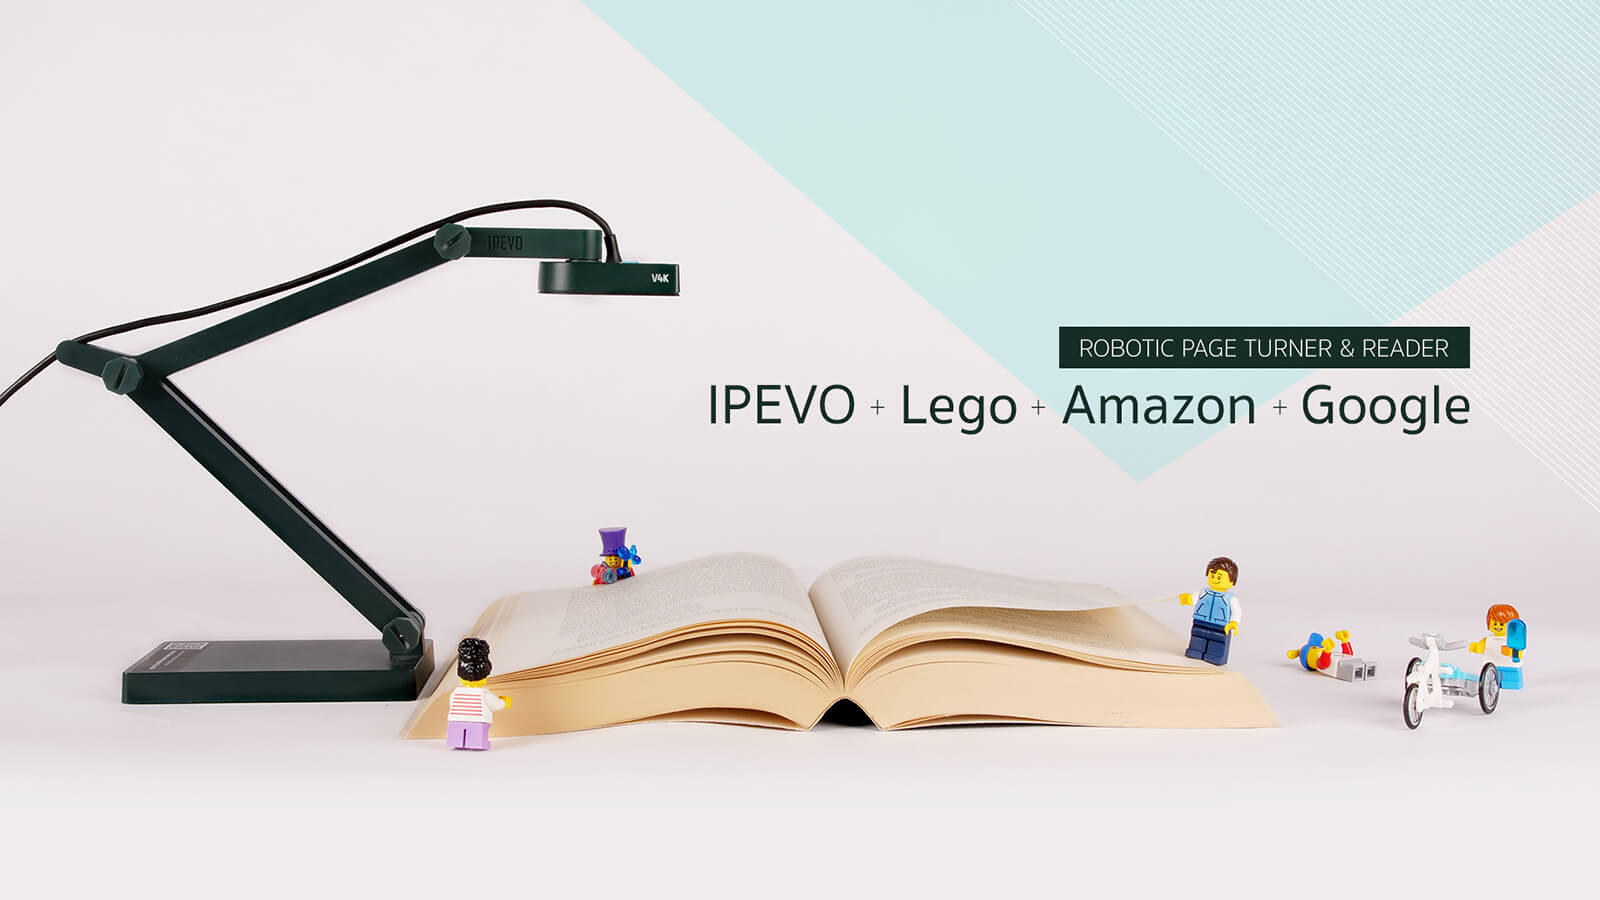 Creating a robotic page turner and reader for the visually impaired using tools from IPEVO, Lego, Amazon, and Google